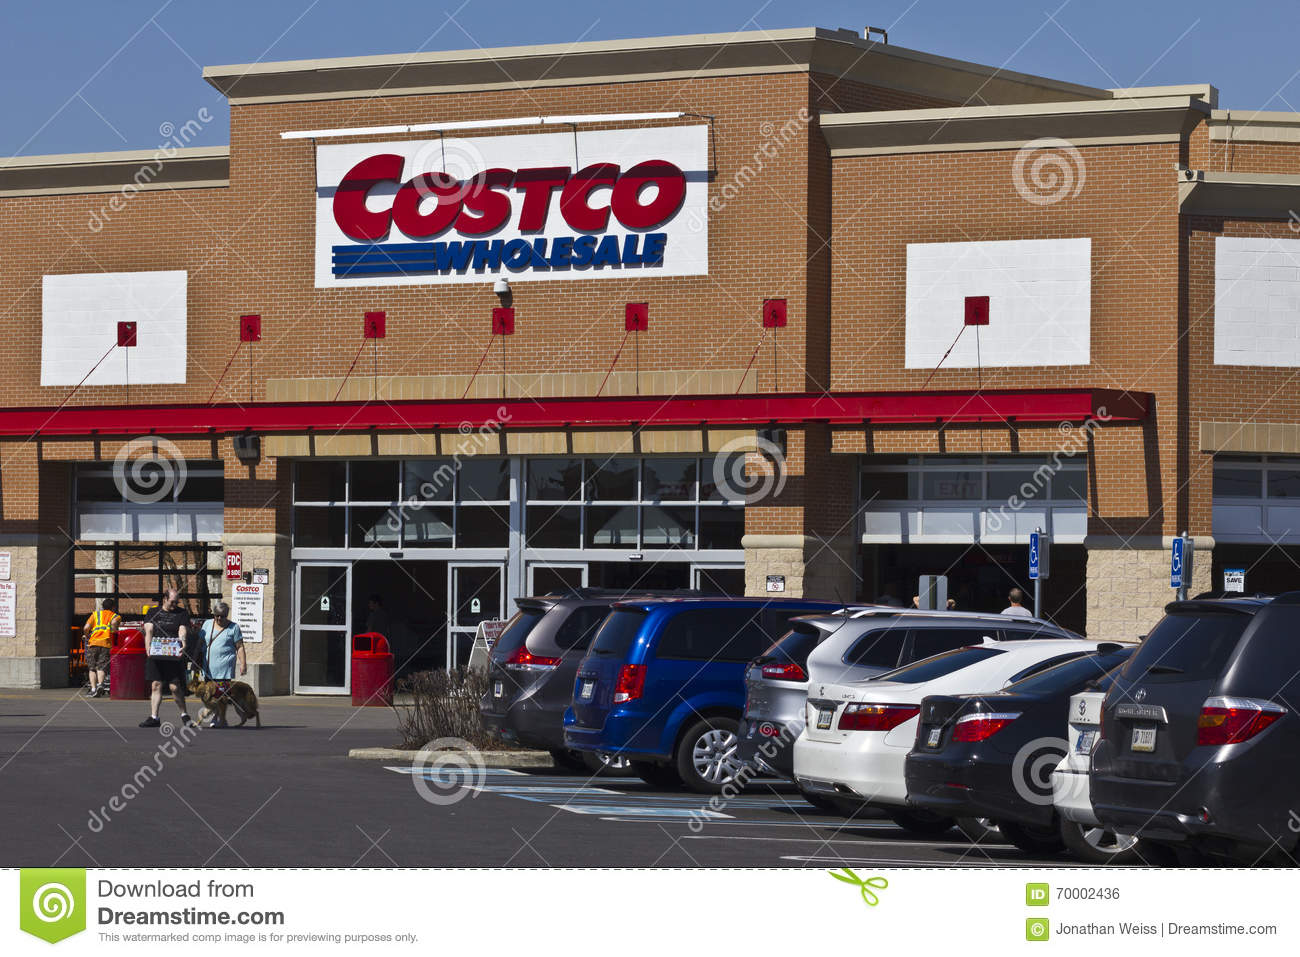 Indianapolis - cerca do abril de 2016: Lugar da venda por atacado de Costco mim